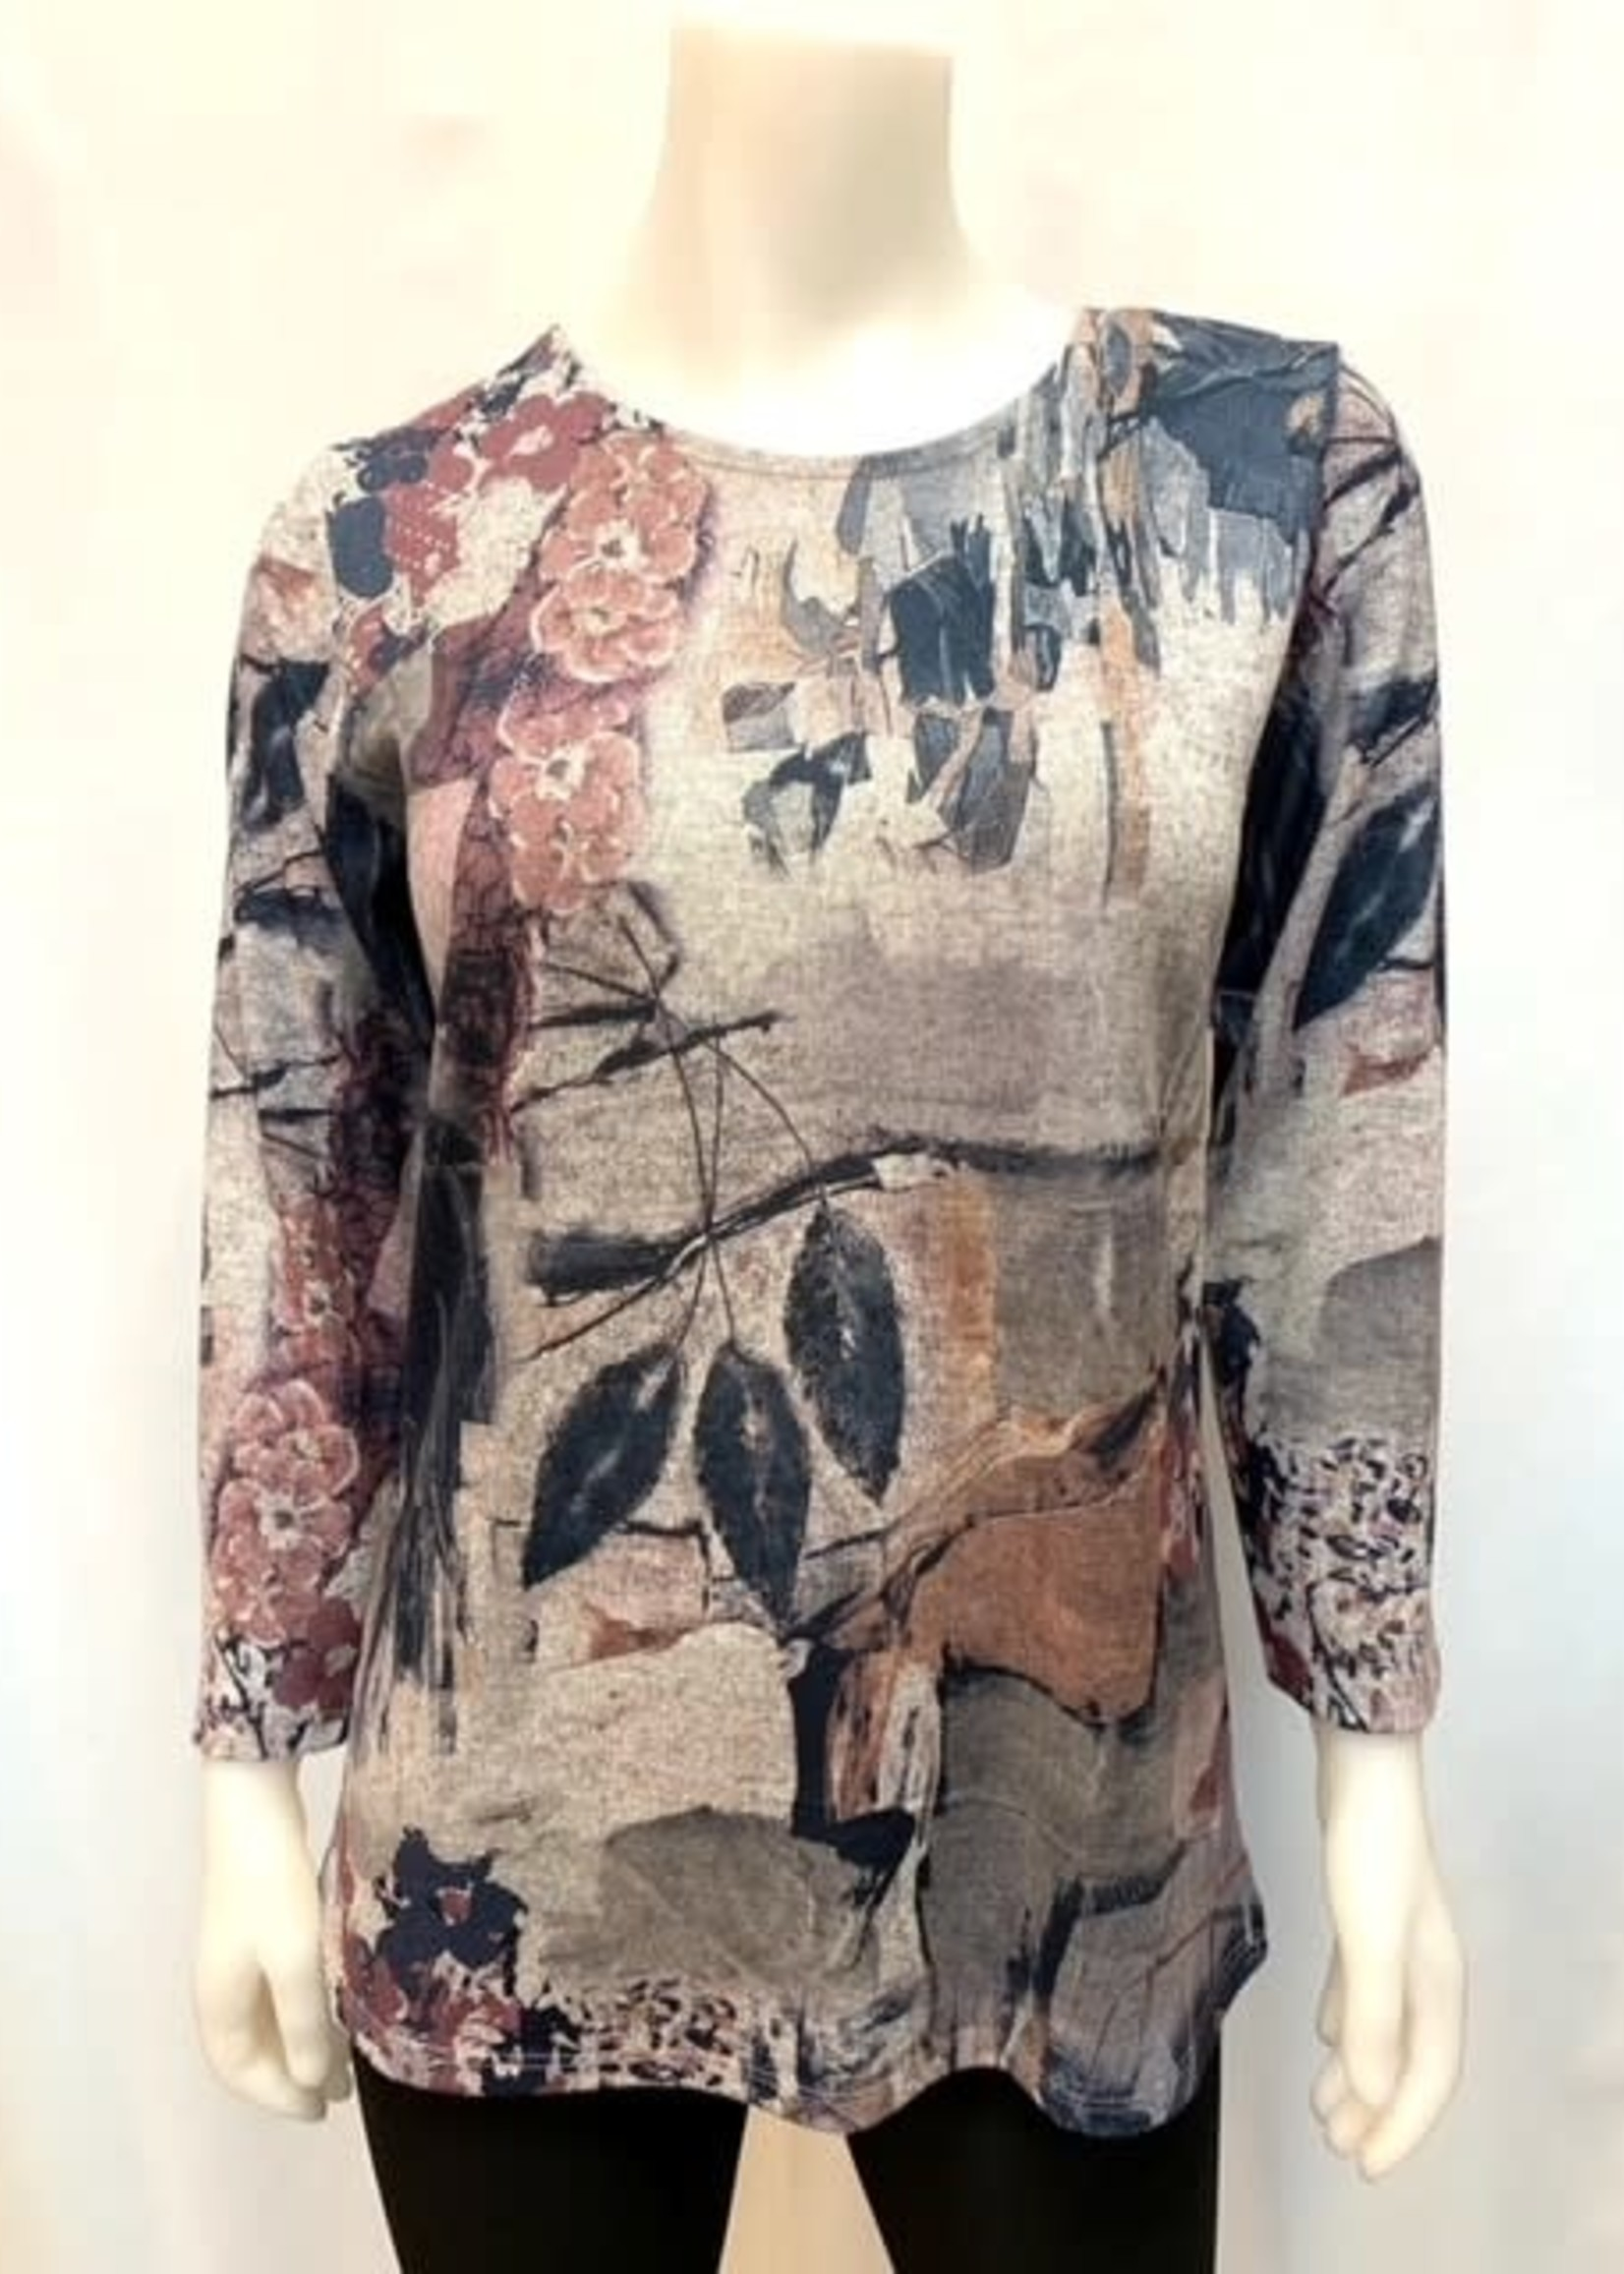 Julia Divina Print top, available in 3 prints